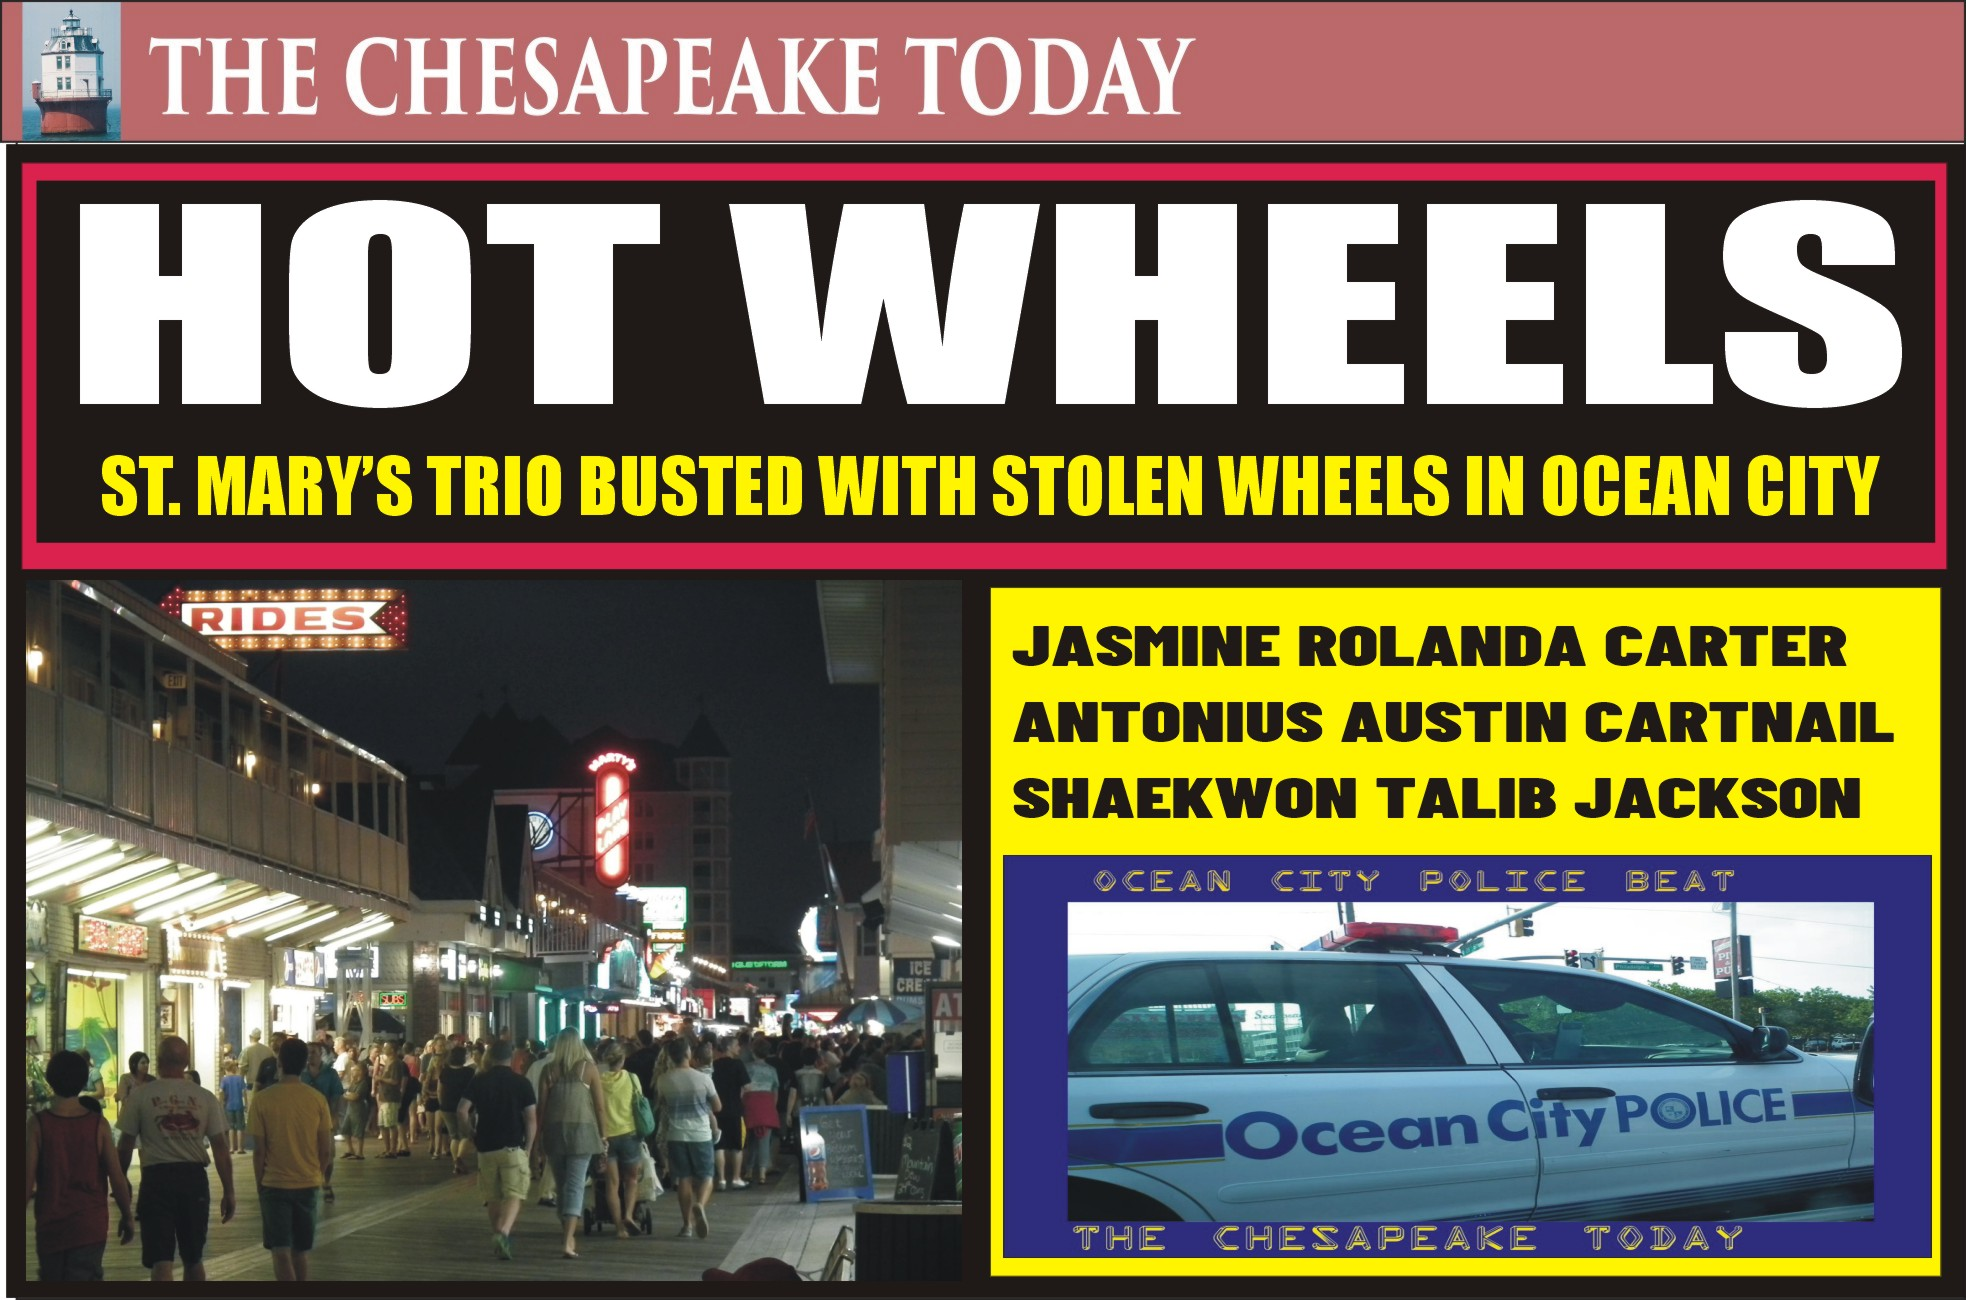 BEACH BUST: ST. MARY'S THUGS GREAT OCEAN CITY ADVENTURE WITH STOLEN WHEELS ENDS IN SLAMMER